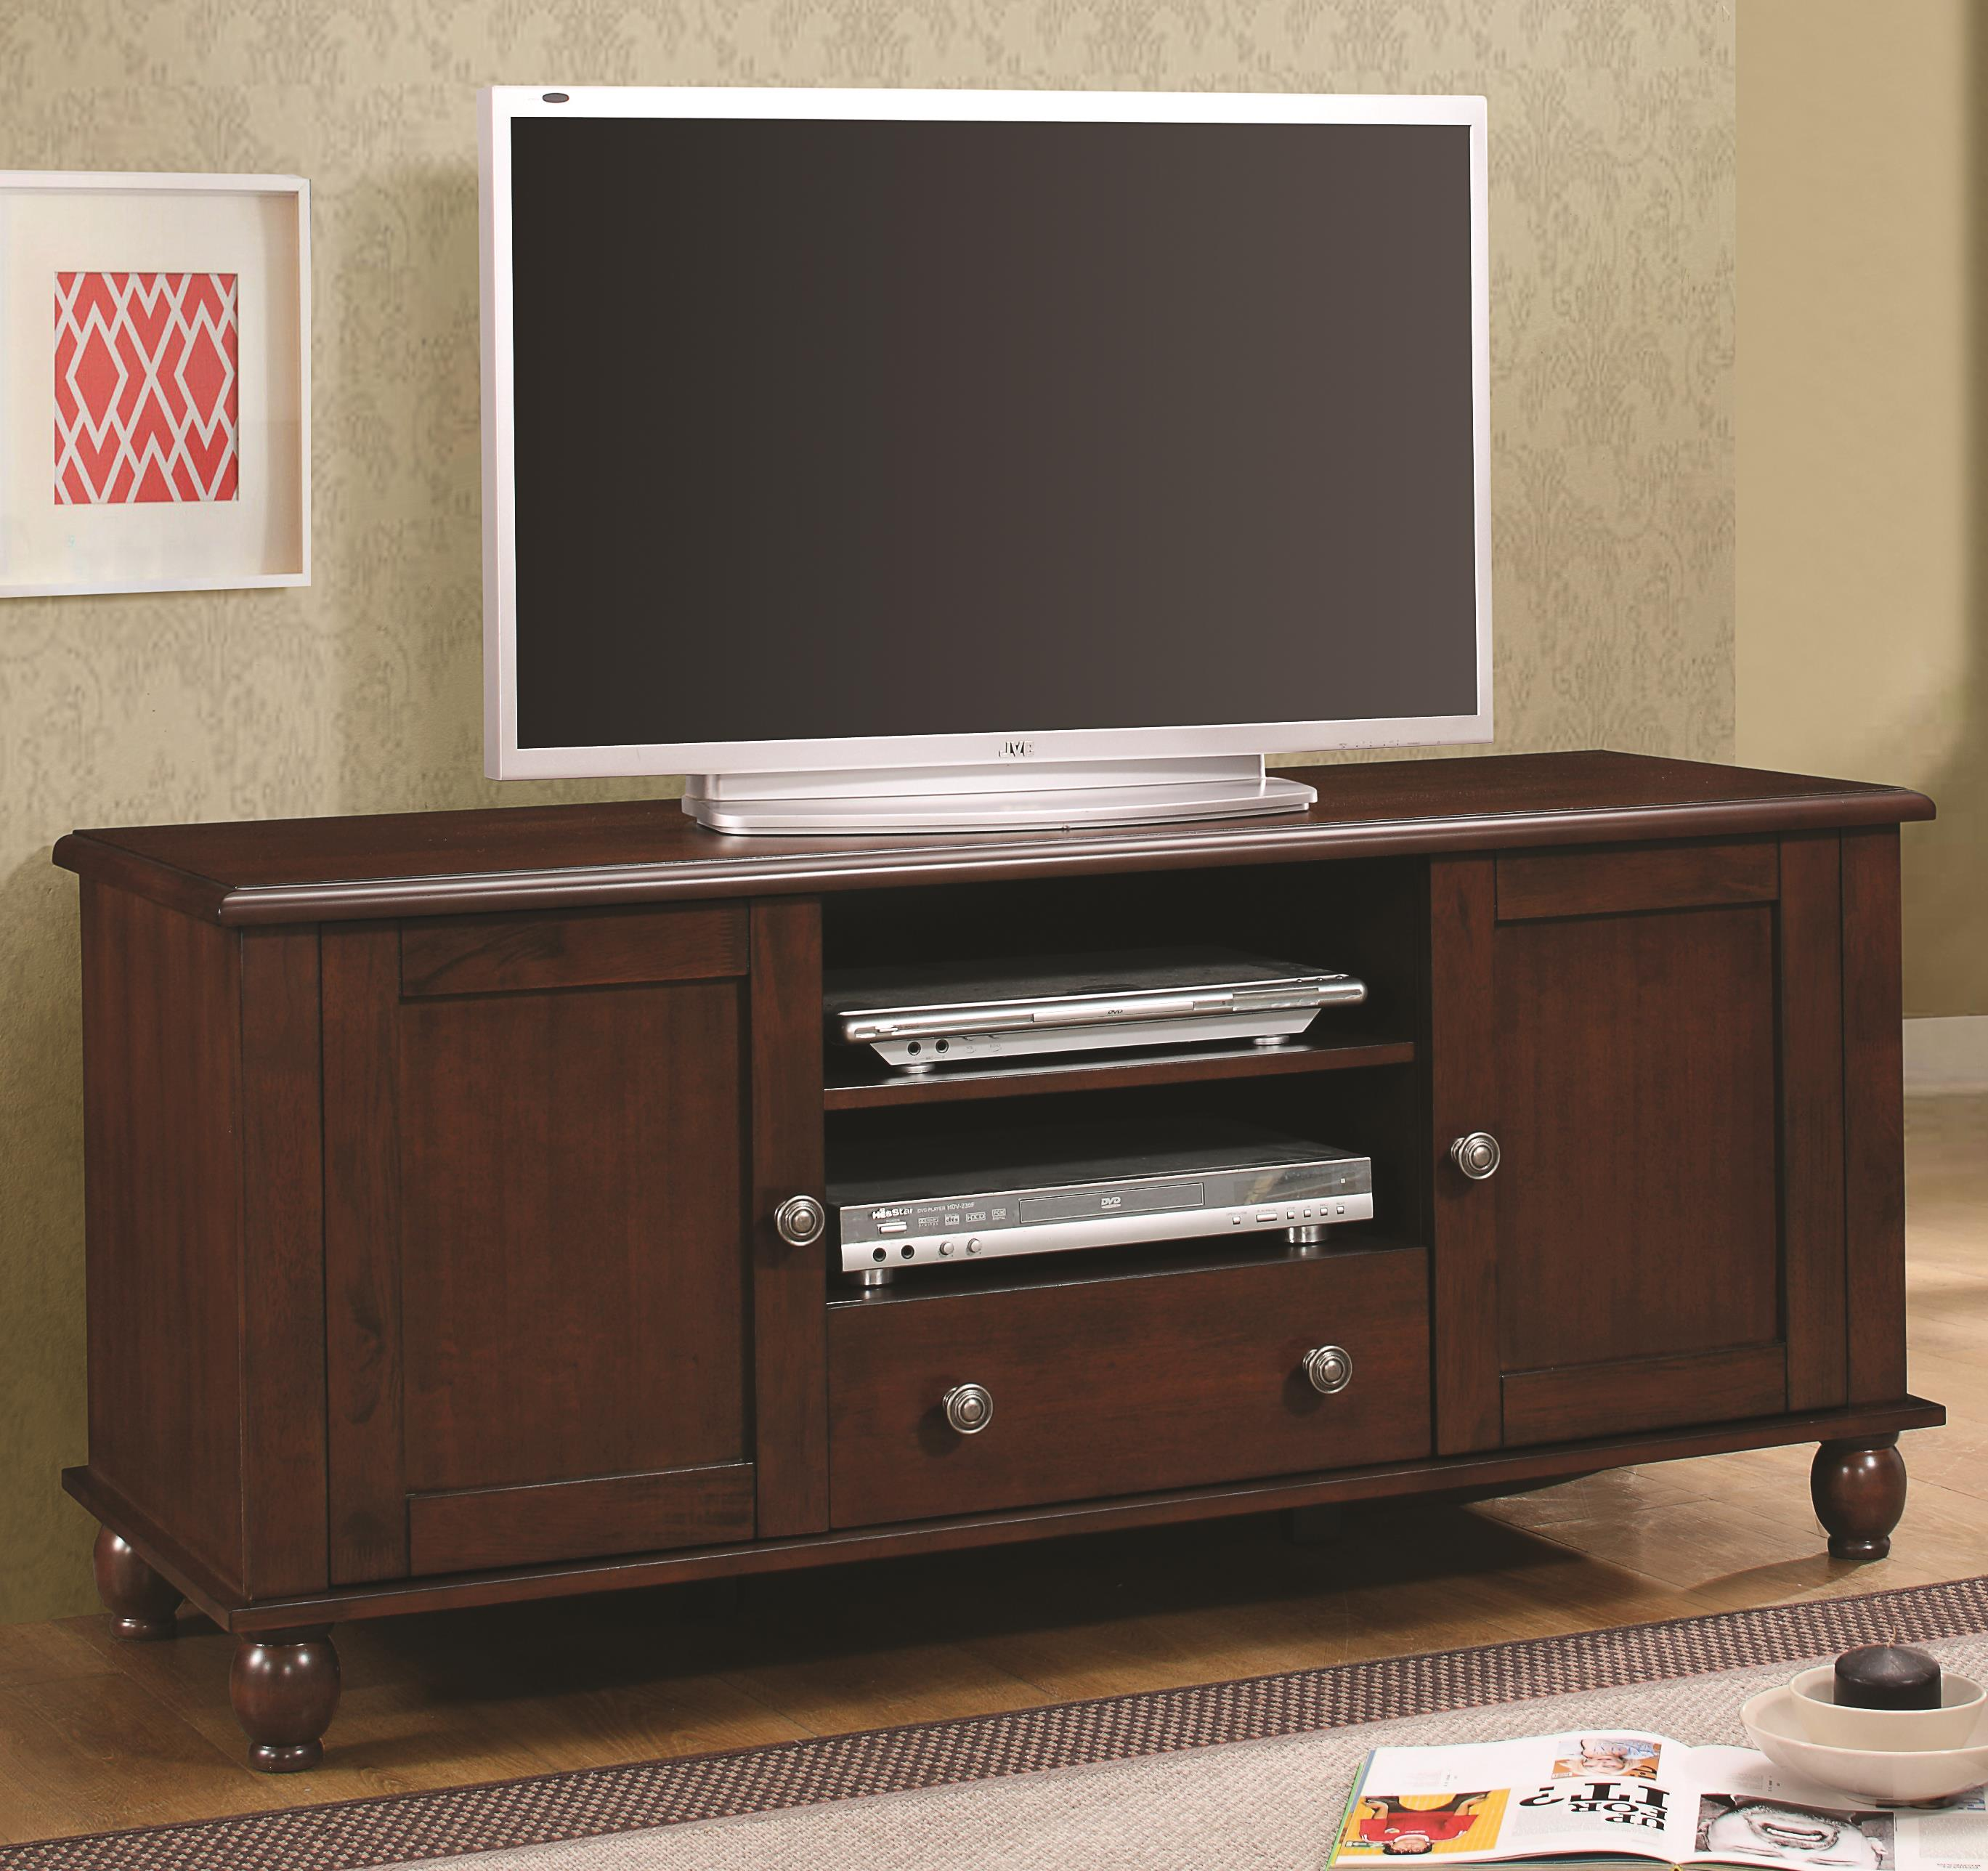 Merlot Finish Tv Stand | Droughtrelief.org